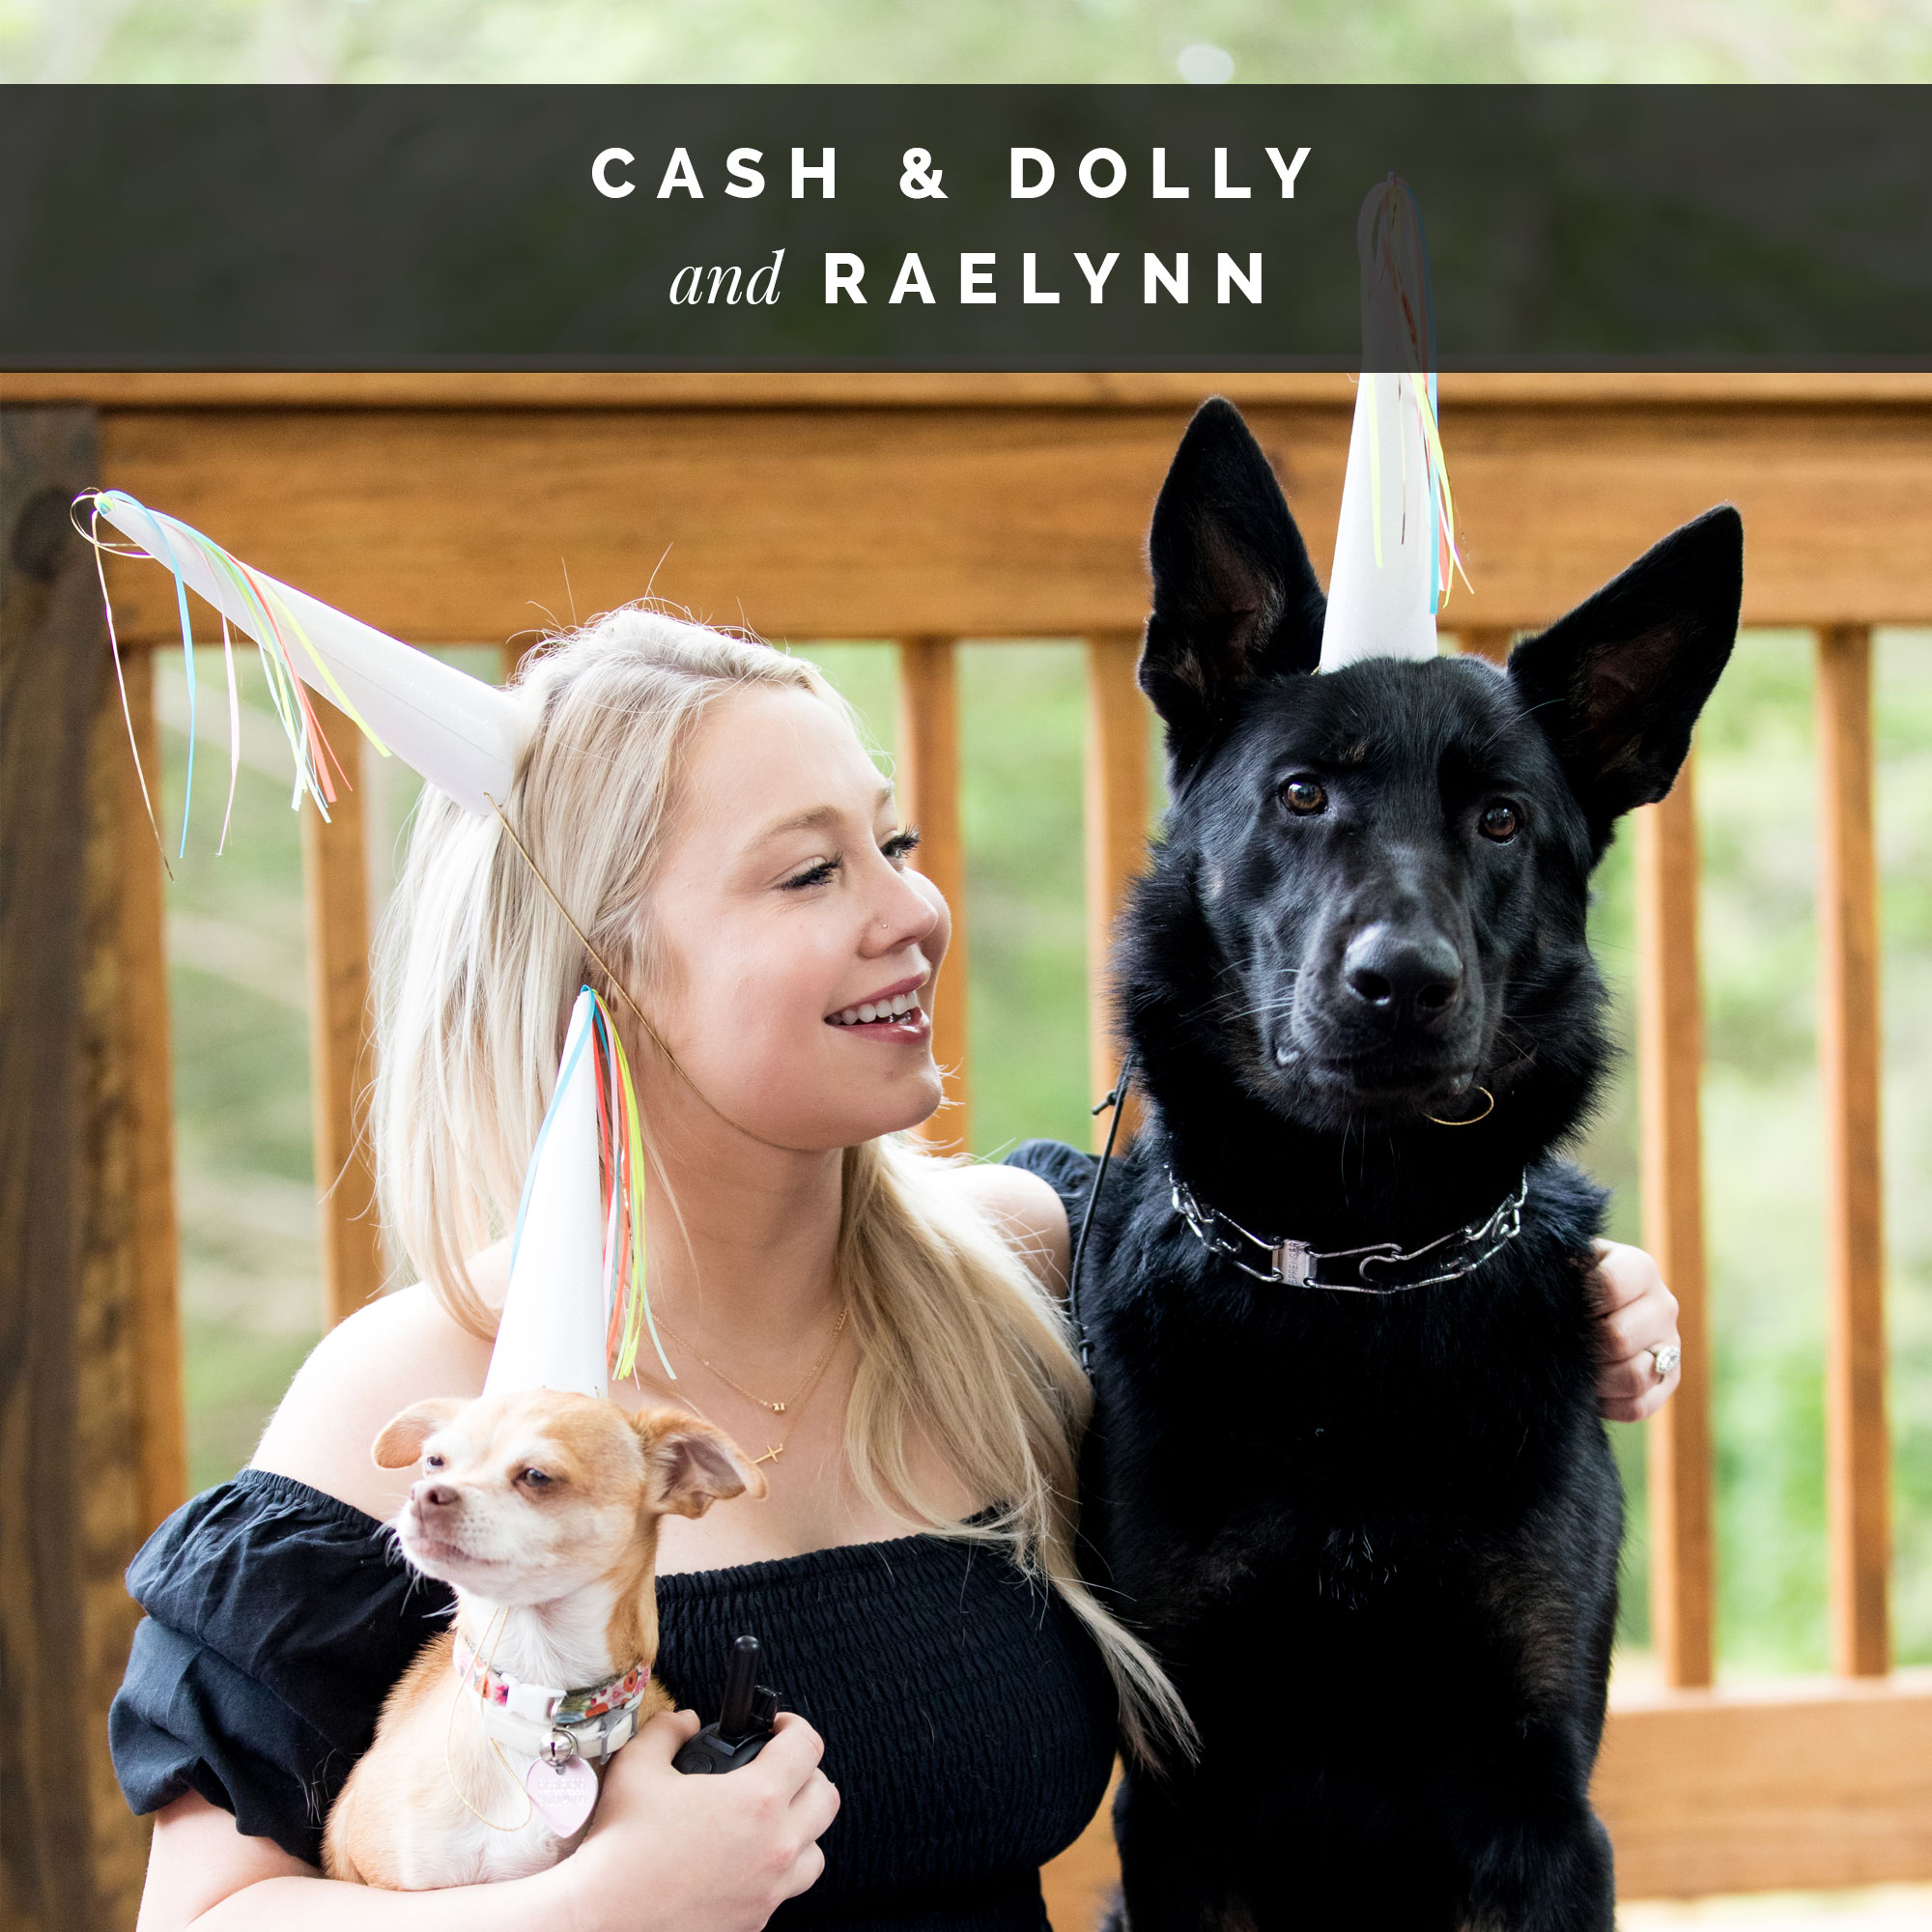 Photo of country artist RaeLynn and her dogs | Celebrity Dogs and their people by Sara Kauss